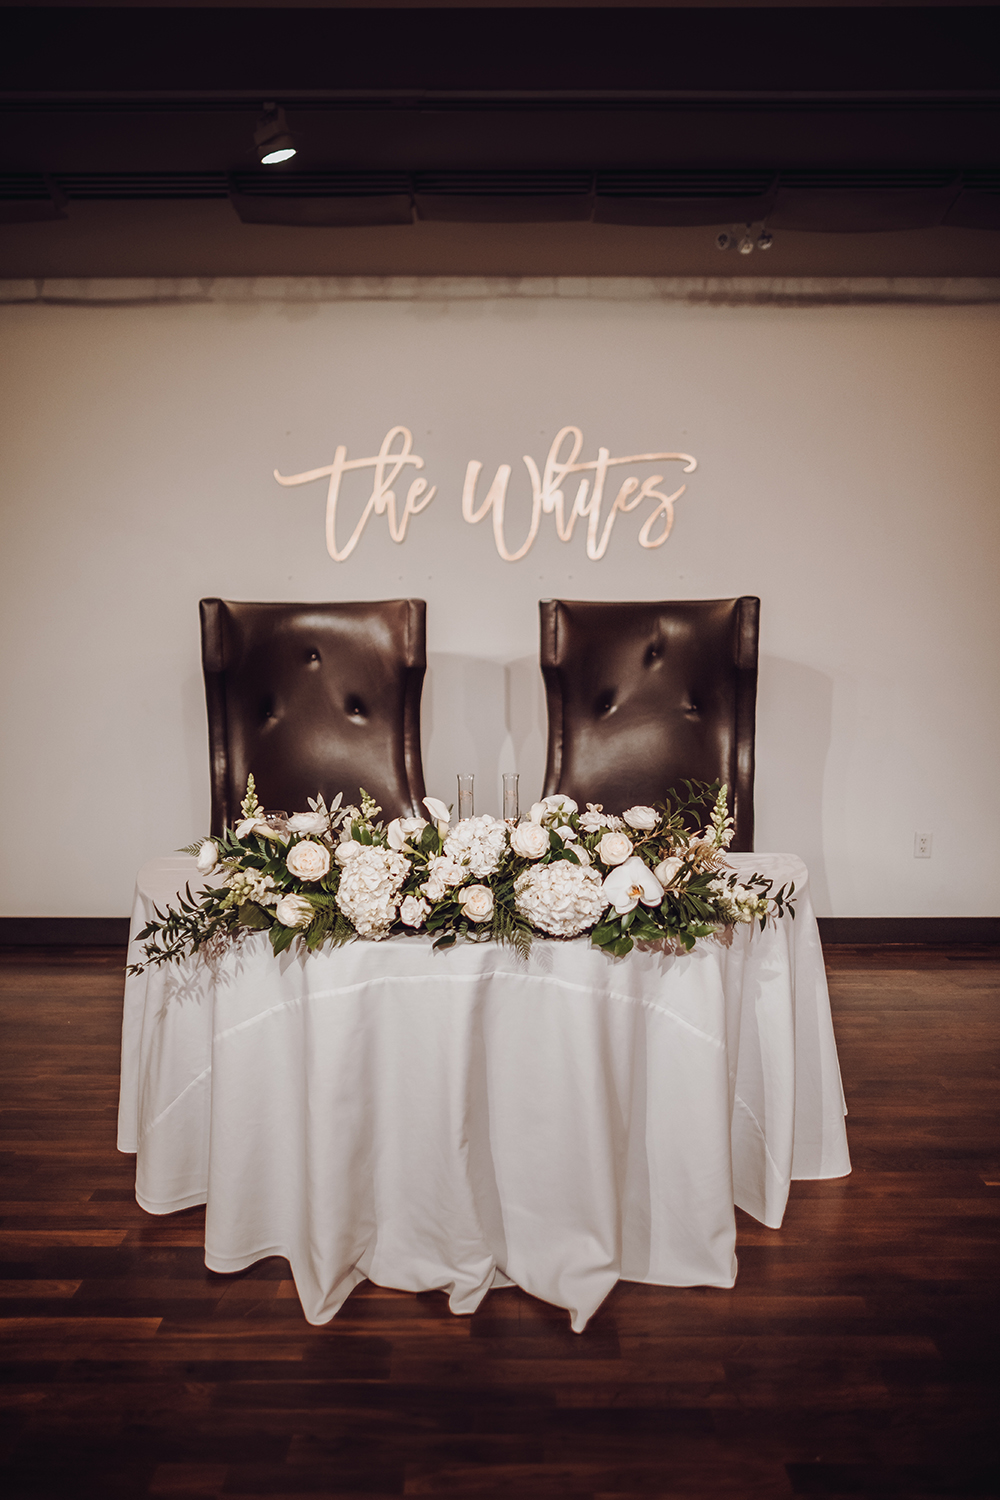 his her table - wedding reception decor